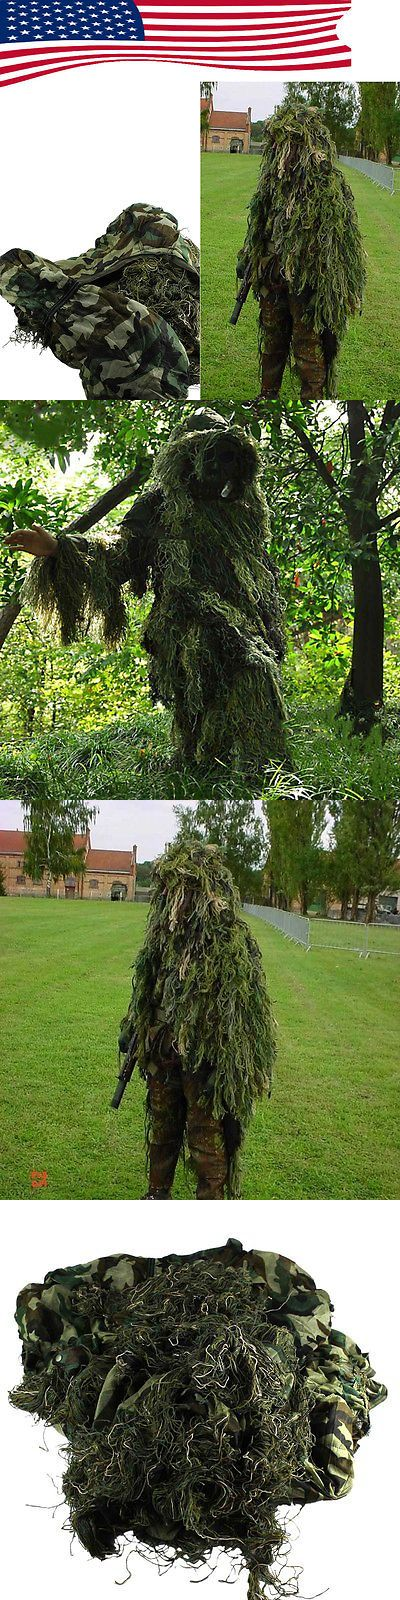 Ghillie Suits 177870: Set Yowie Sniper Camouflage Tactical Camo Suit For Birding Hunting Ghillie -> BUY IT NOW ONLY: $33.99 on eBay!